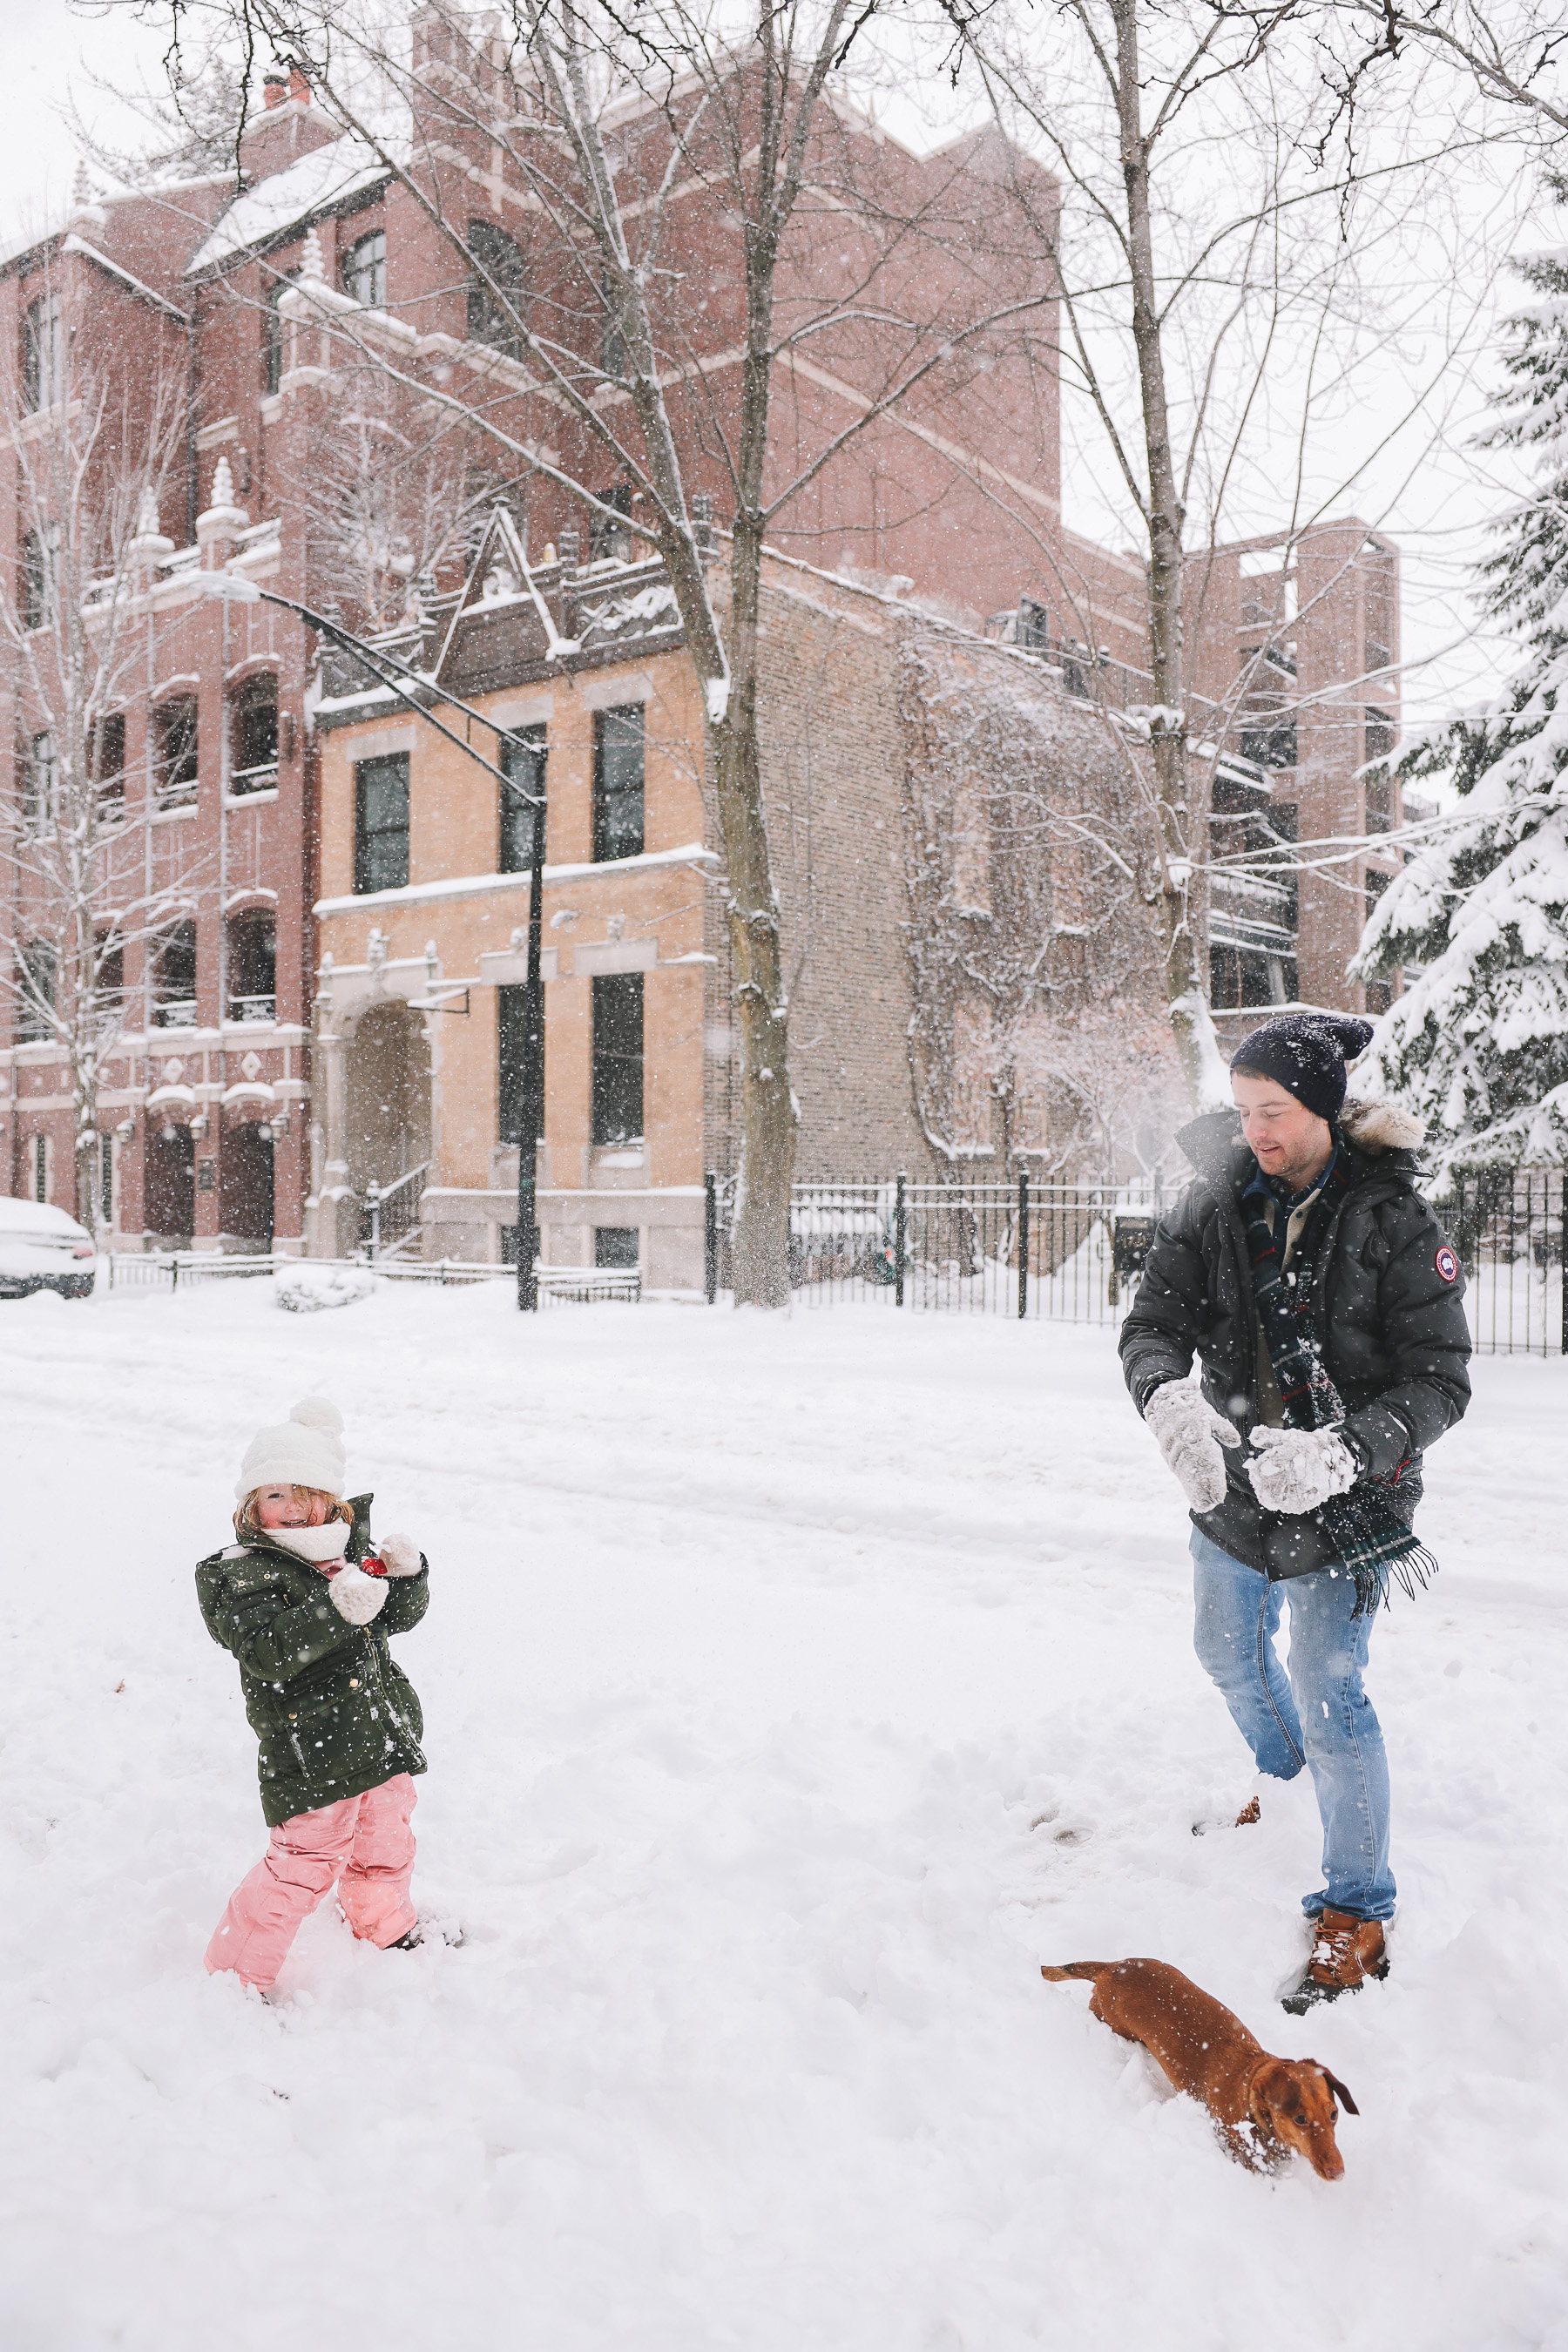 chicago winter time snow | My new lens